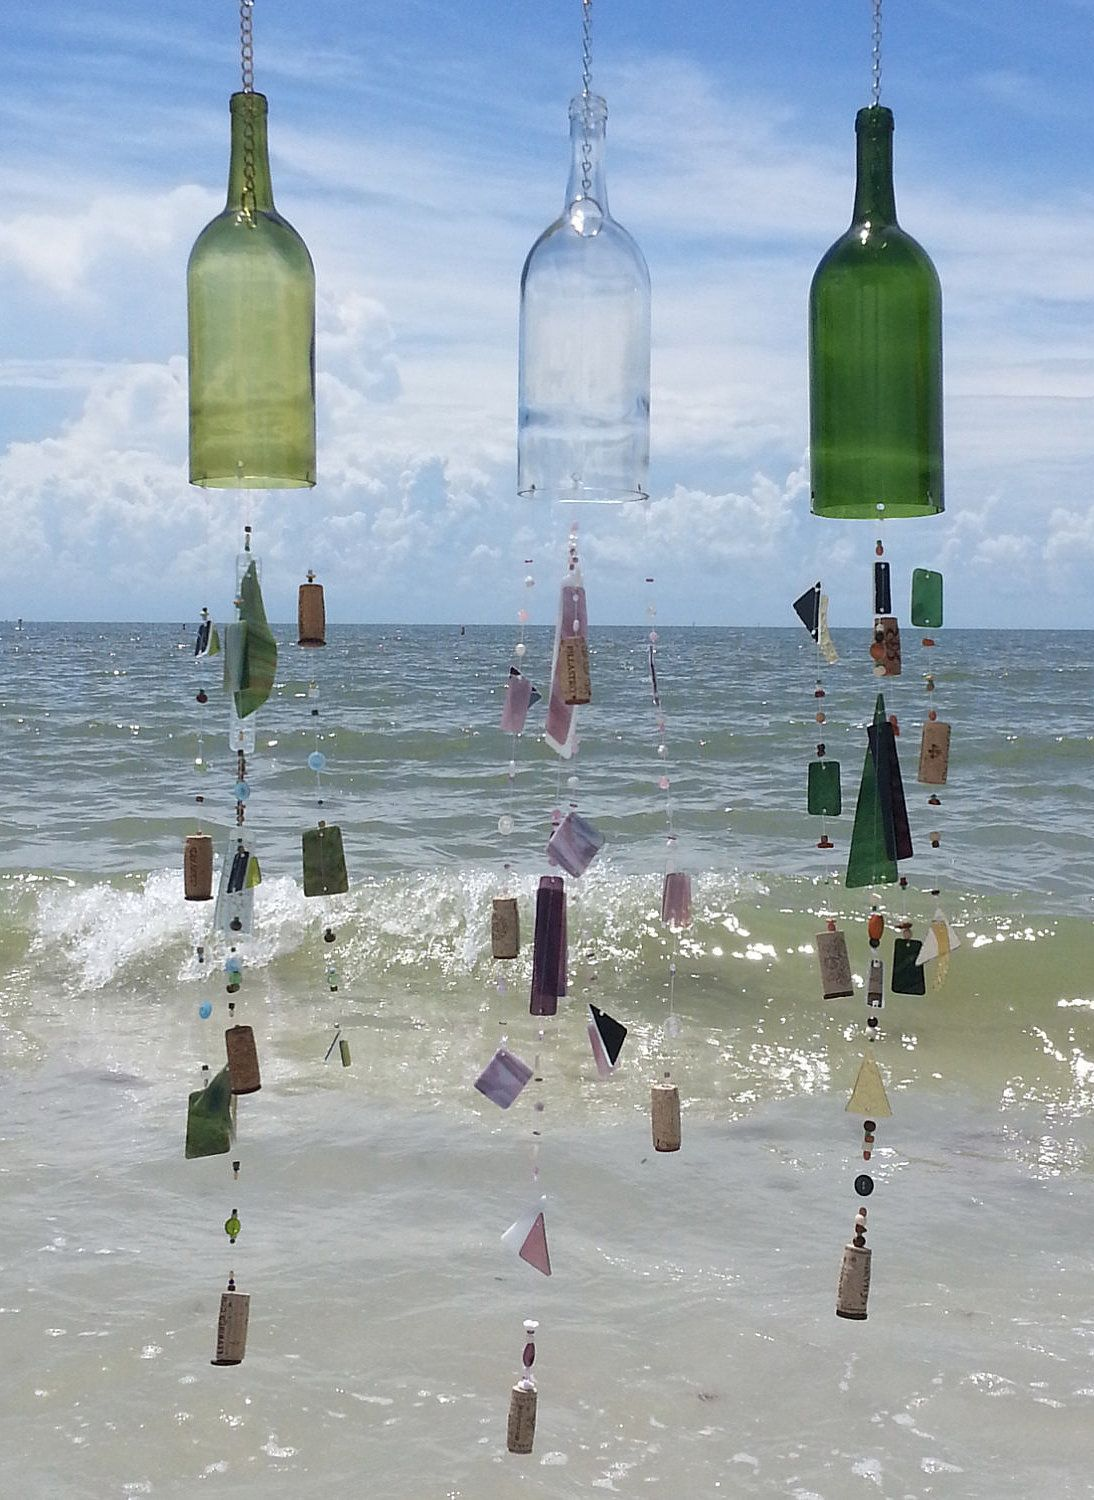 Ornamental bottles - Modified Wine Bottles When Strung With Beautiful Pieces Of Glass Make Ornamental Wind Chimes